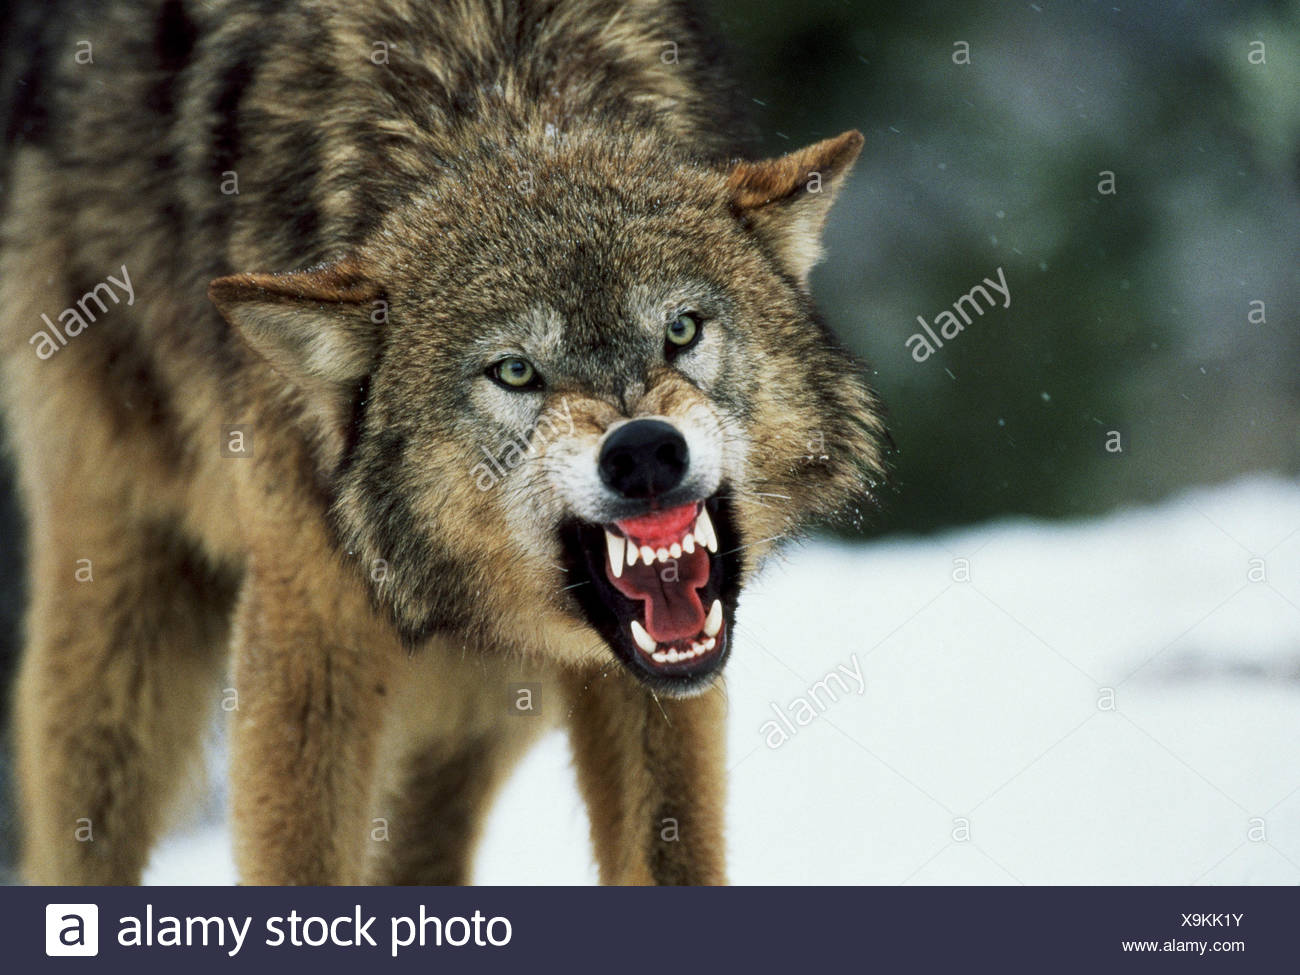 Snarling Gray Wolf - Stock Image